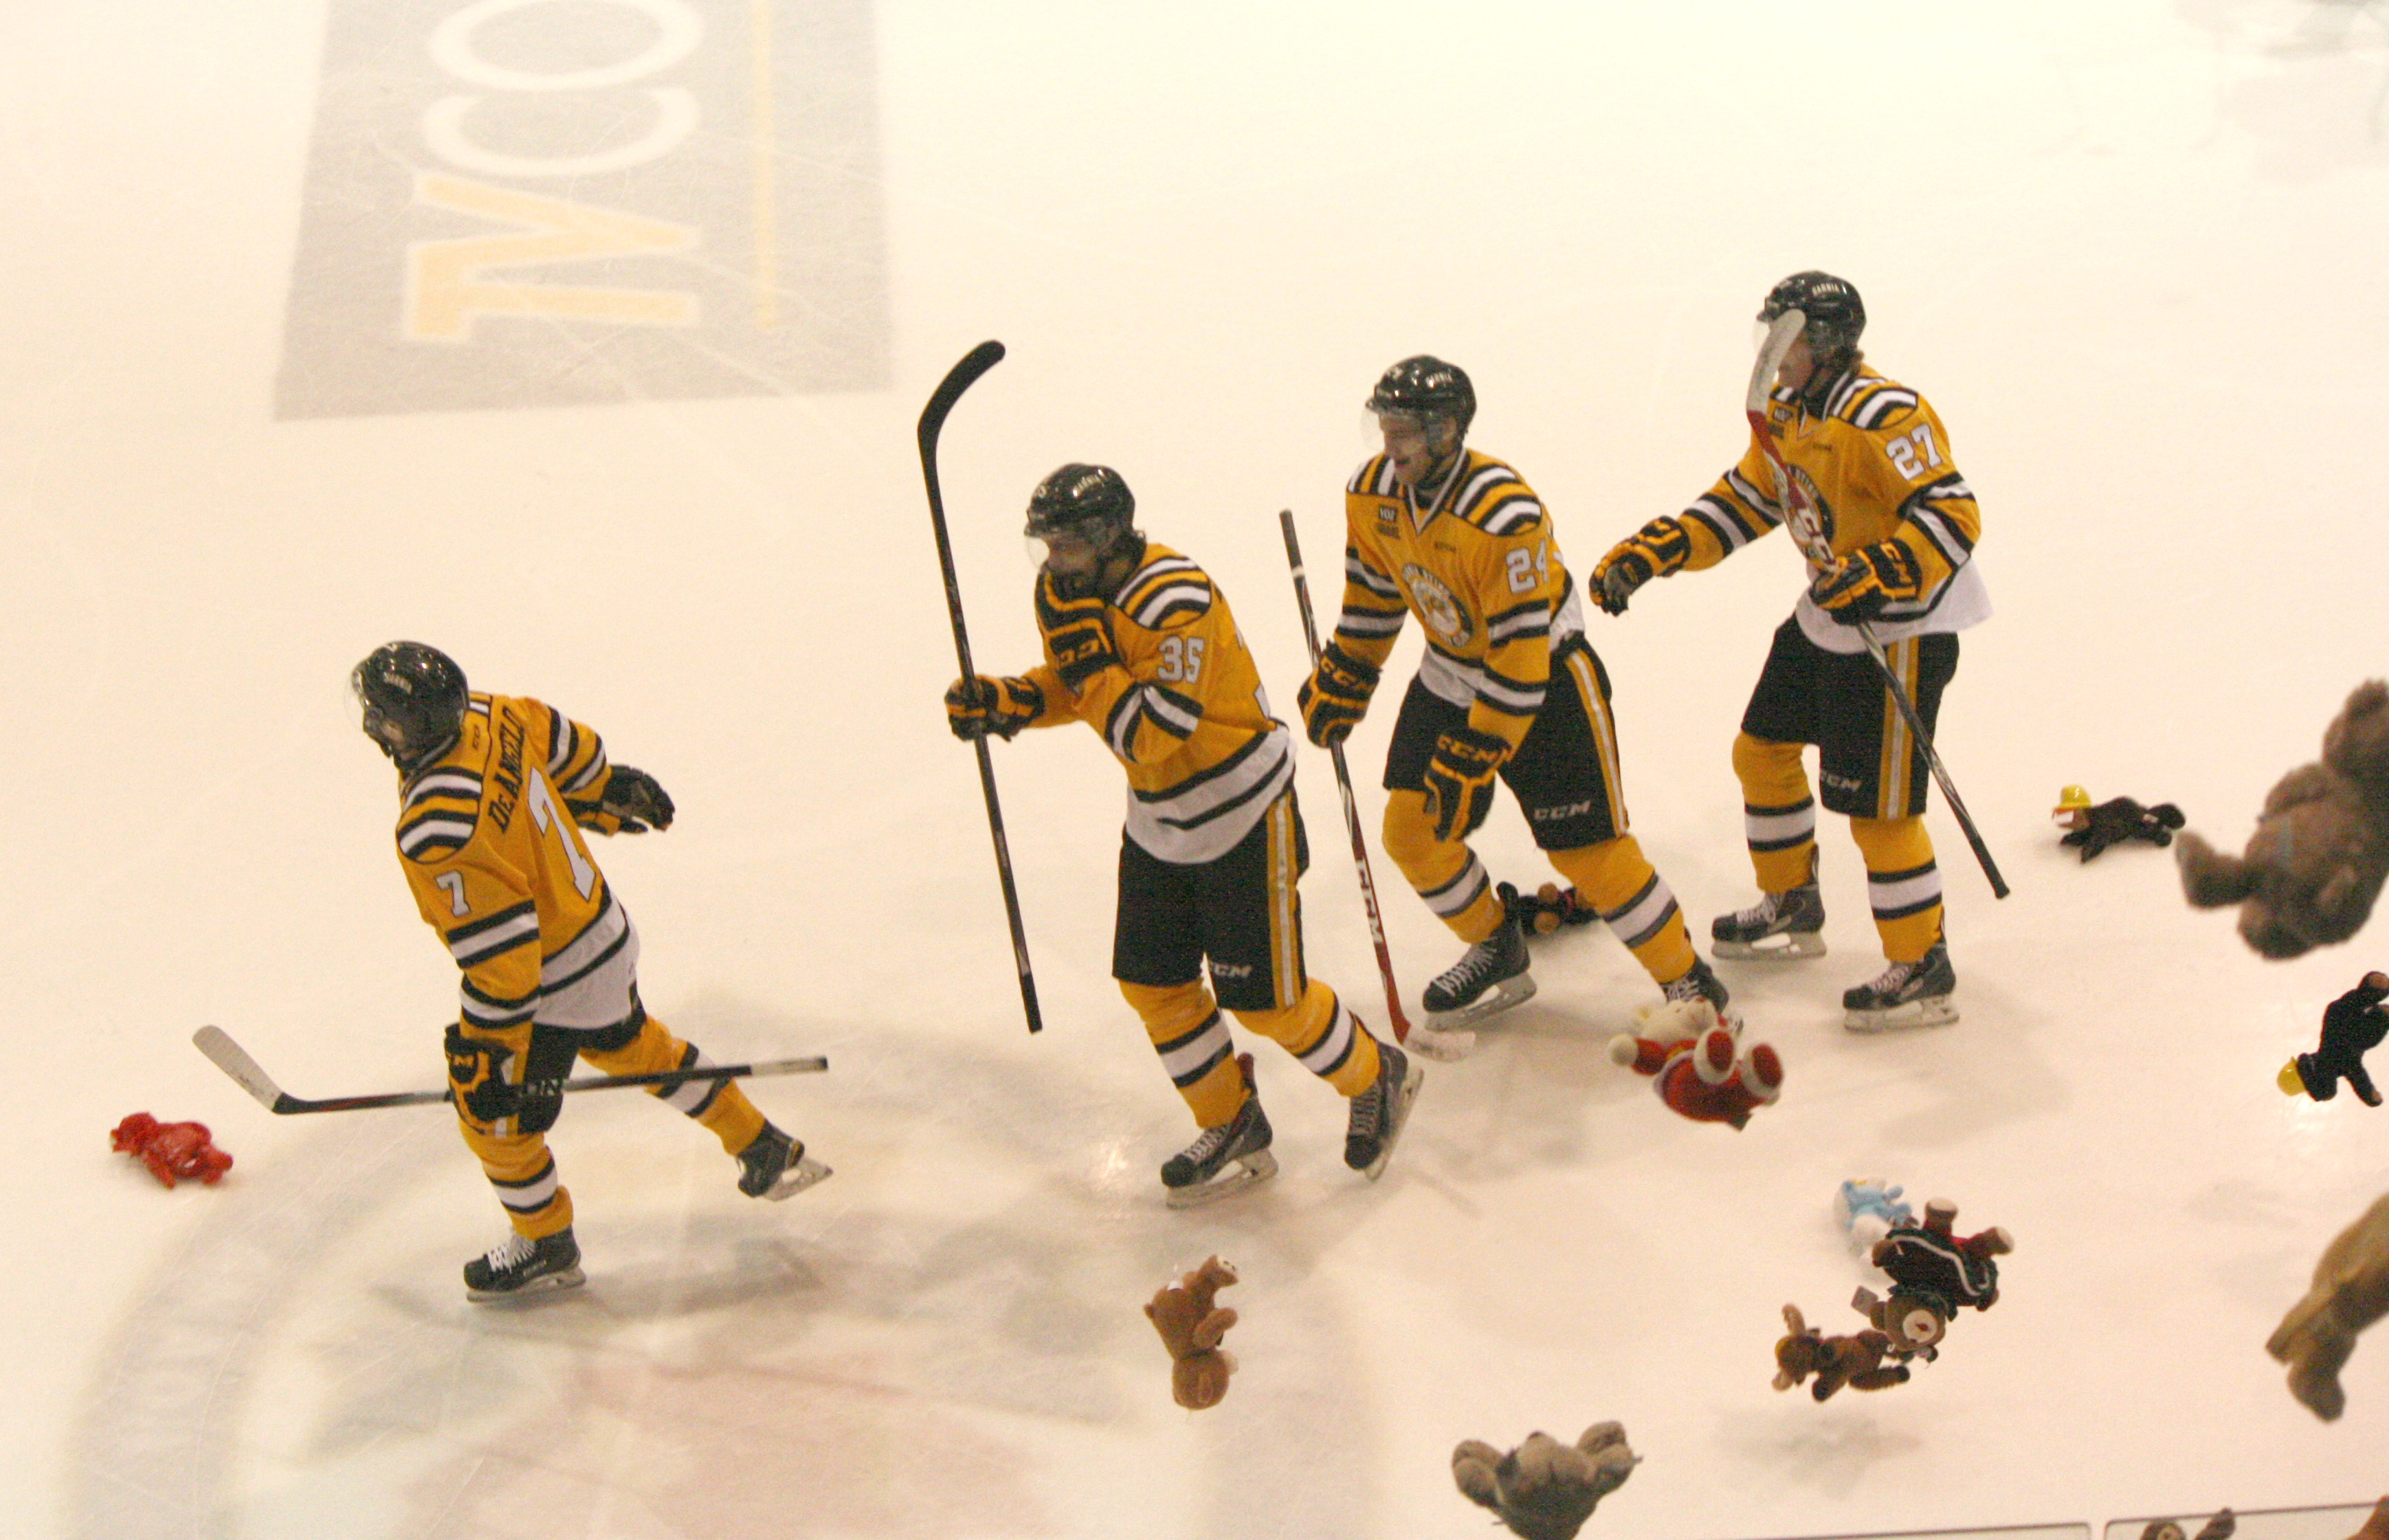 Stuffed toys come raining down as Anthony DeAngelo and the Sting celebrate Dec 7, 2014 (BlackburnNews.com photo by Dave Dentinger)